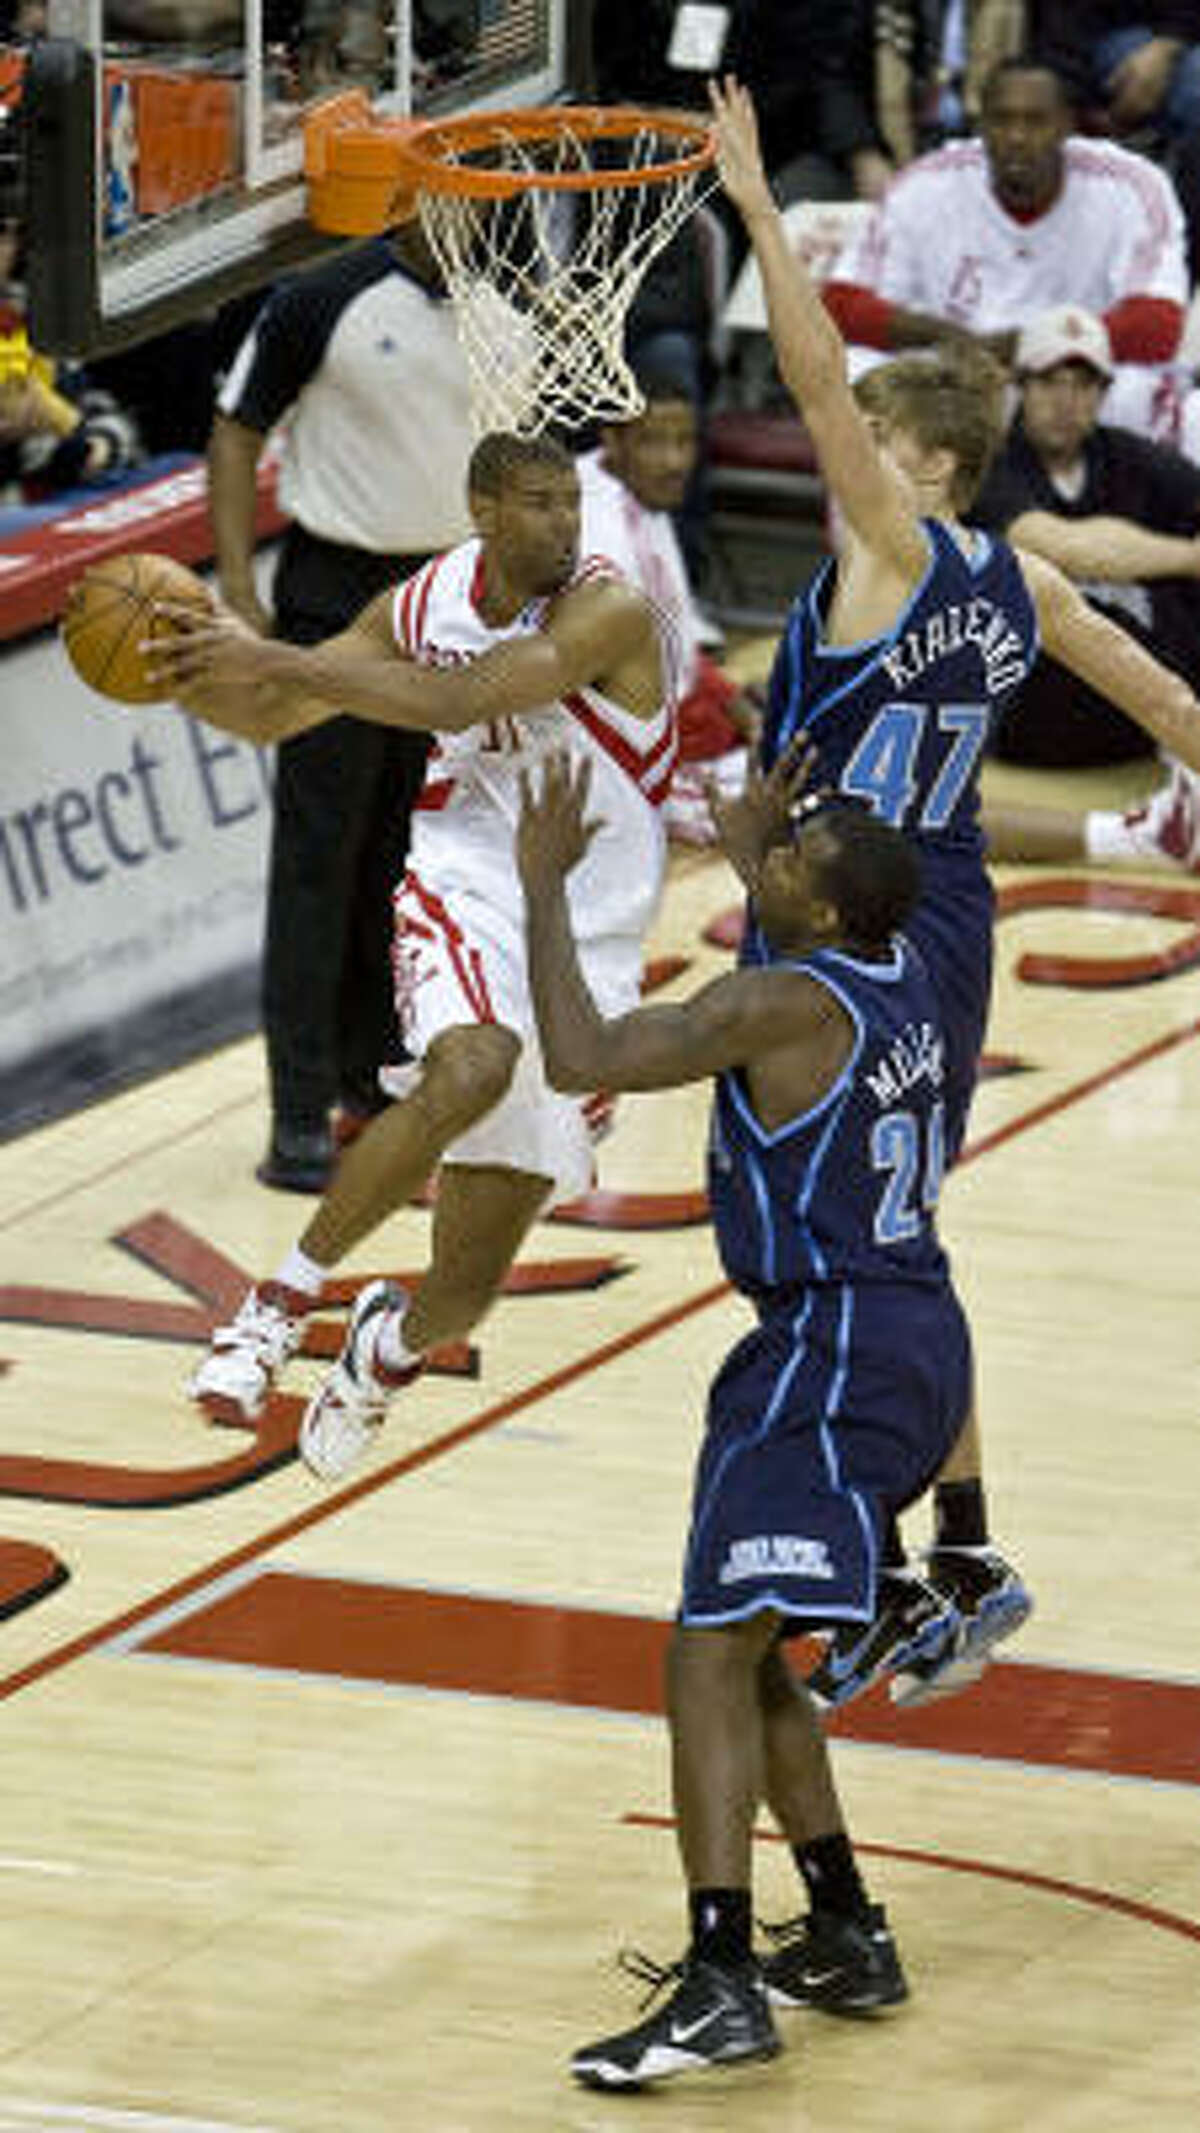 Rockets forward Shane Battier struggled against the Jazz, missing 9 of his 10 shots and finishing with three points.